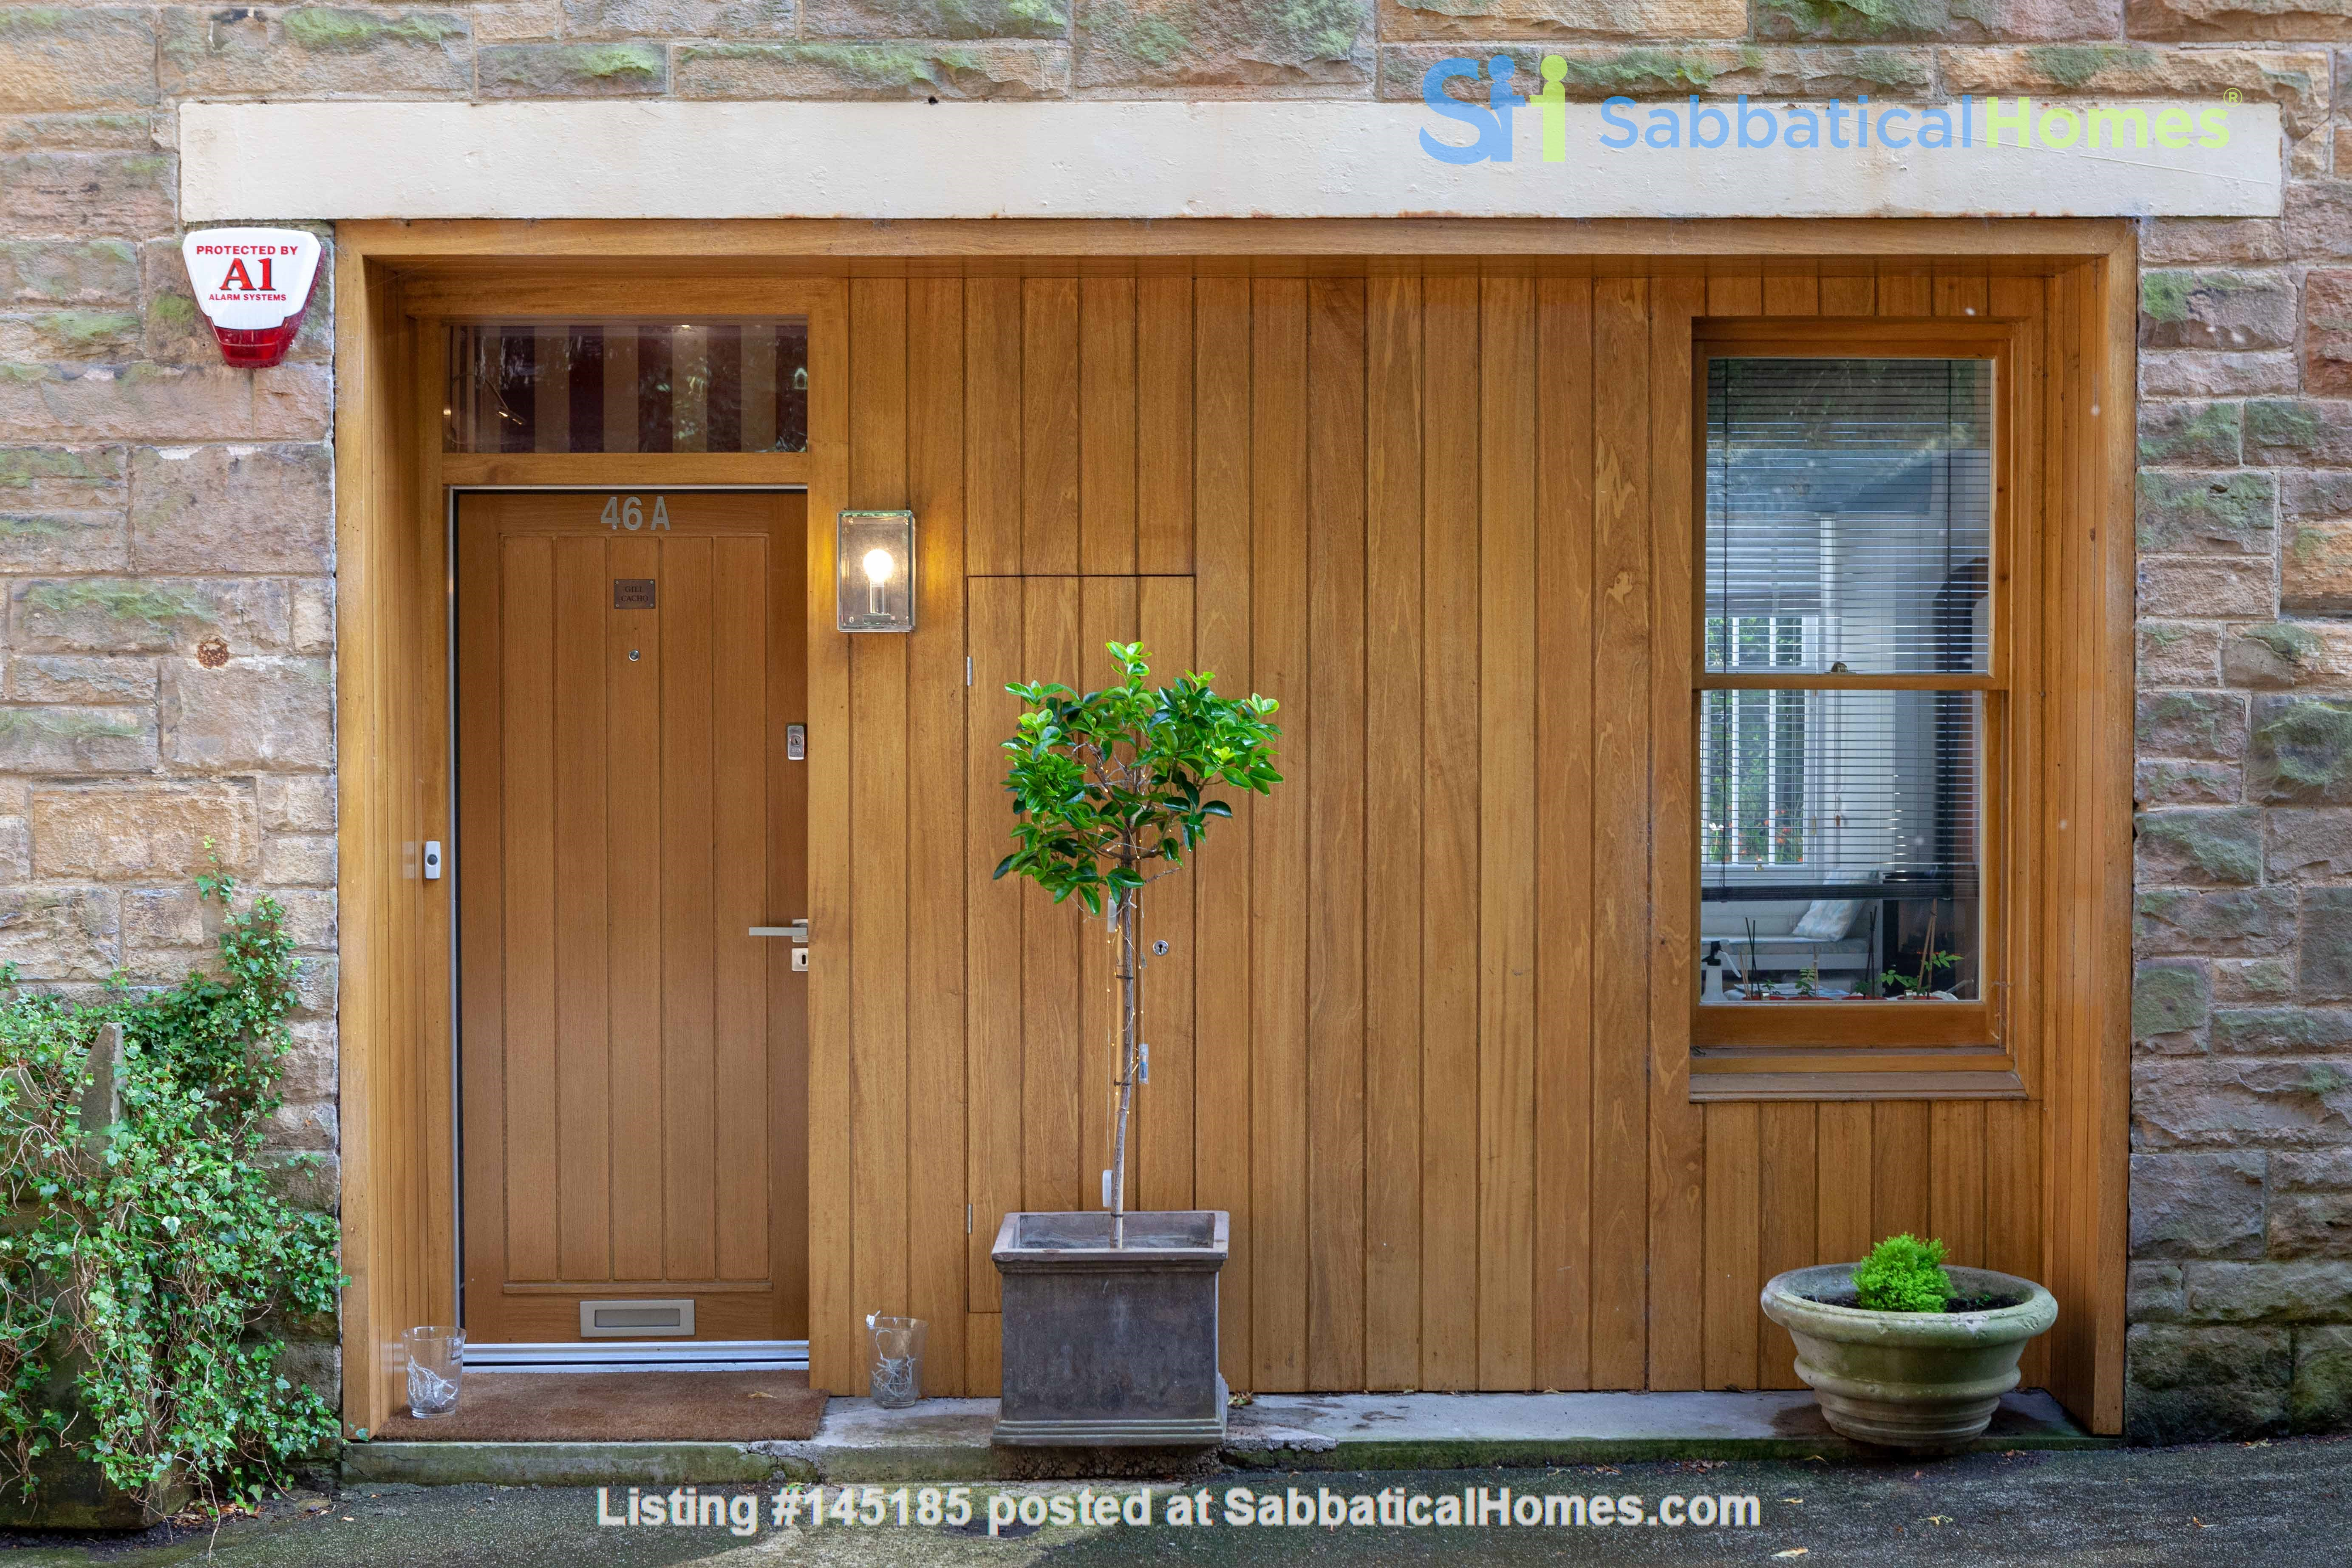 Stunning House for a fish, gardener and architectural lover. Home Rental in Edinburgh, Scotland, United Kingdom 1